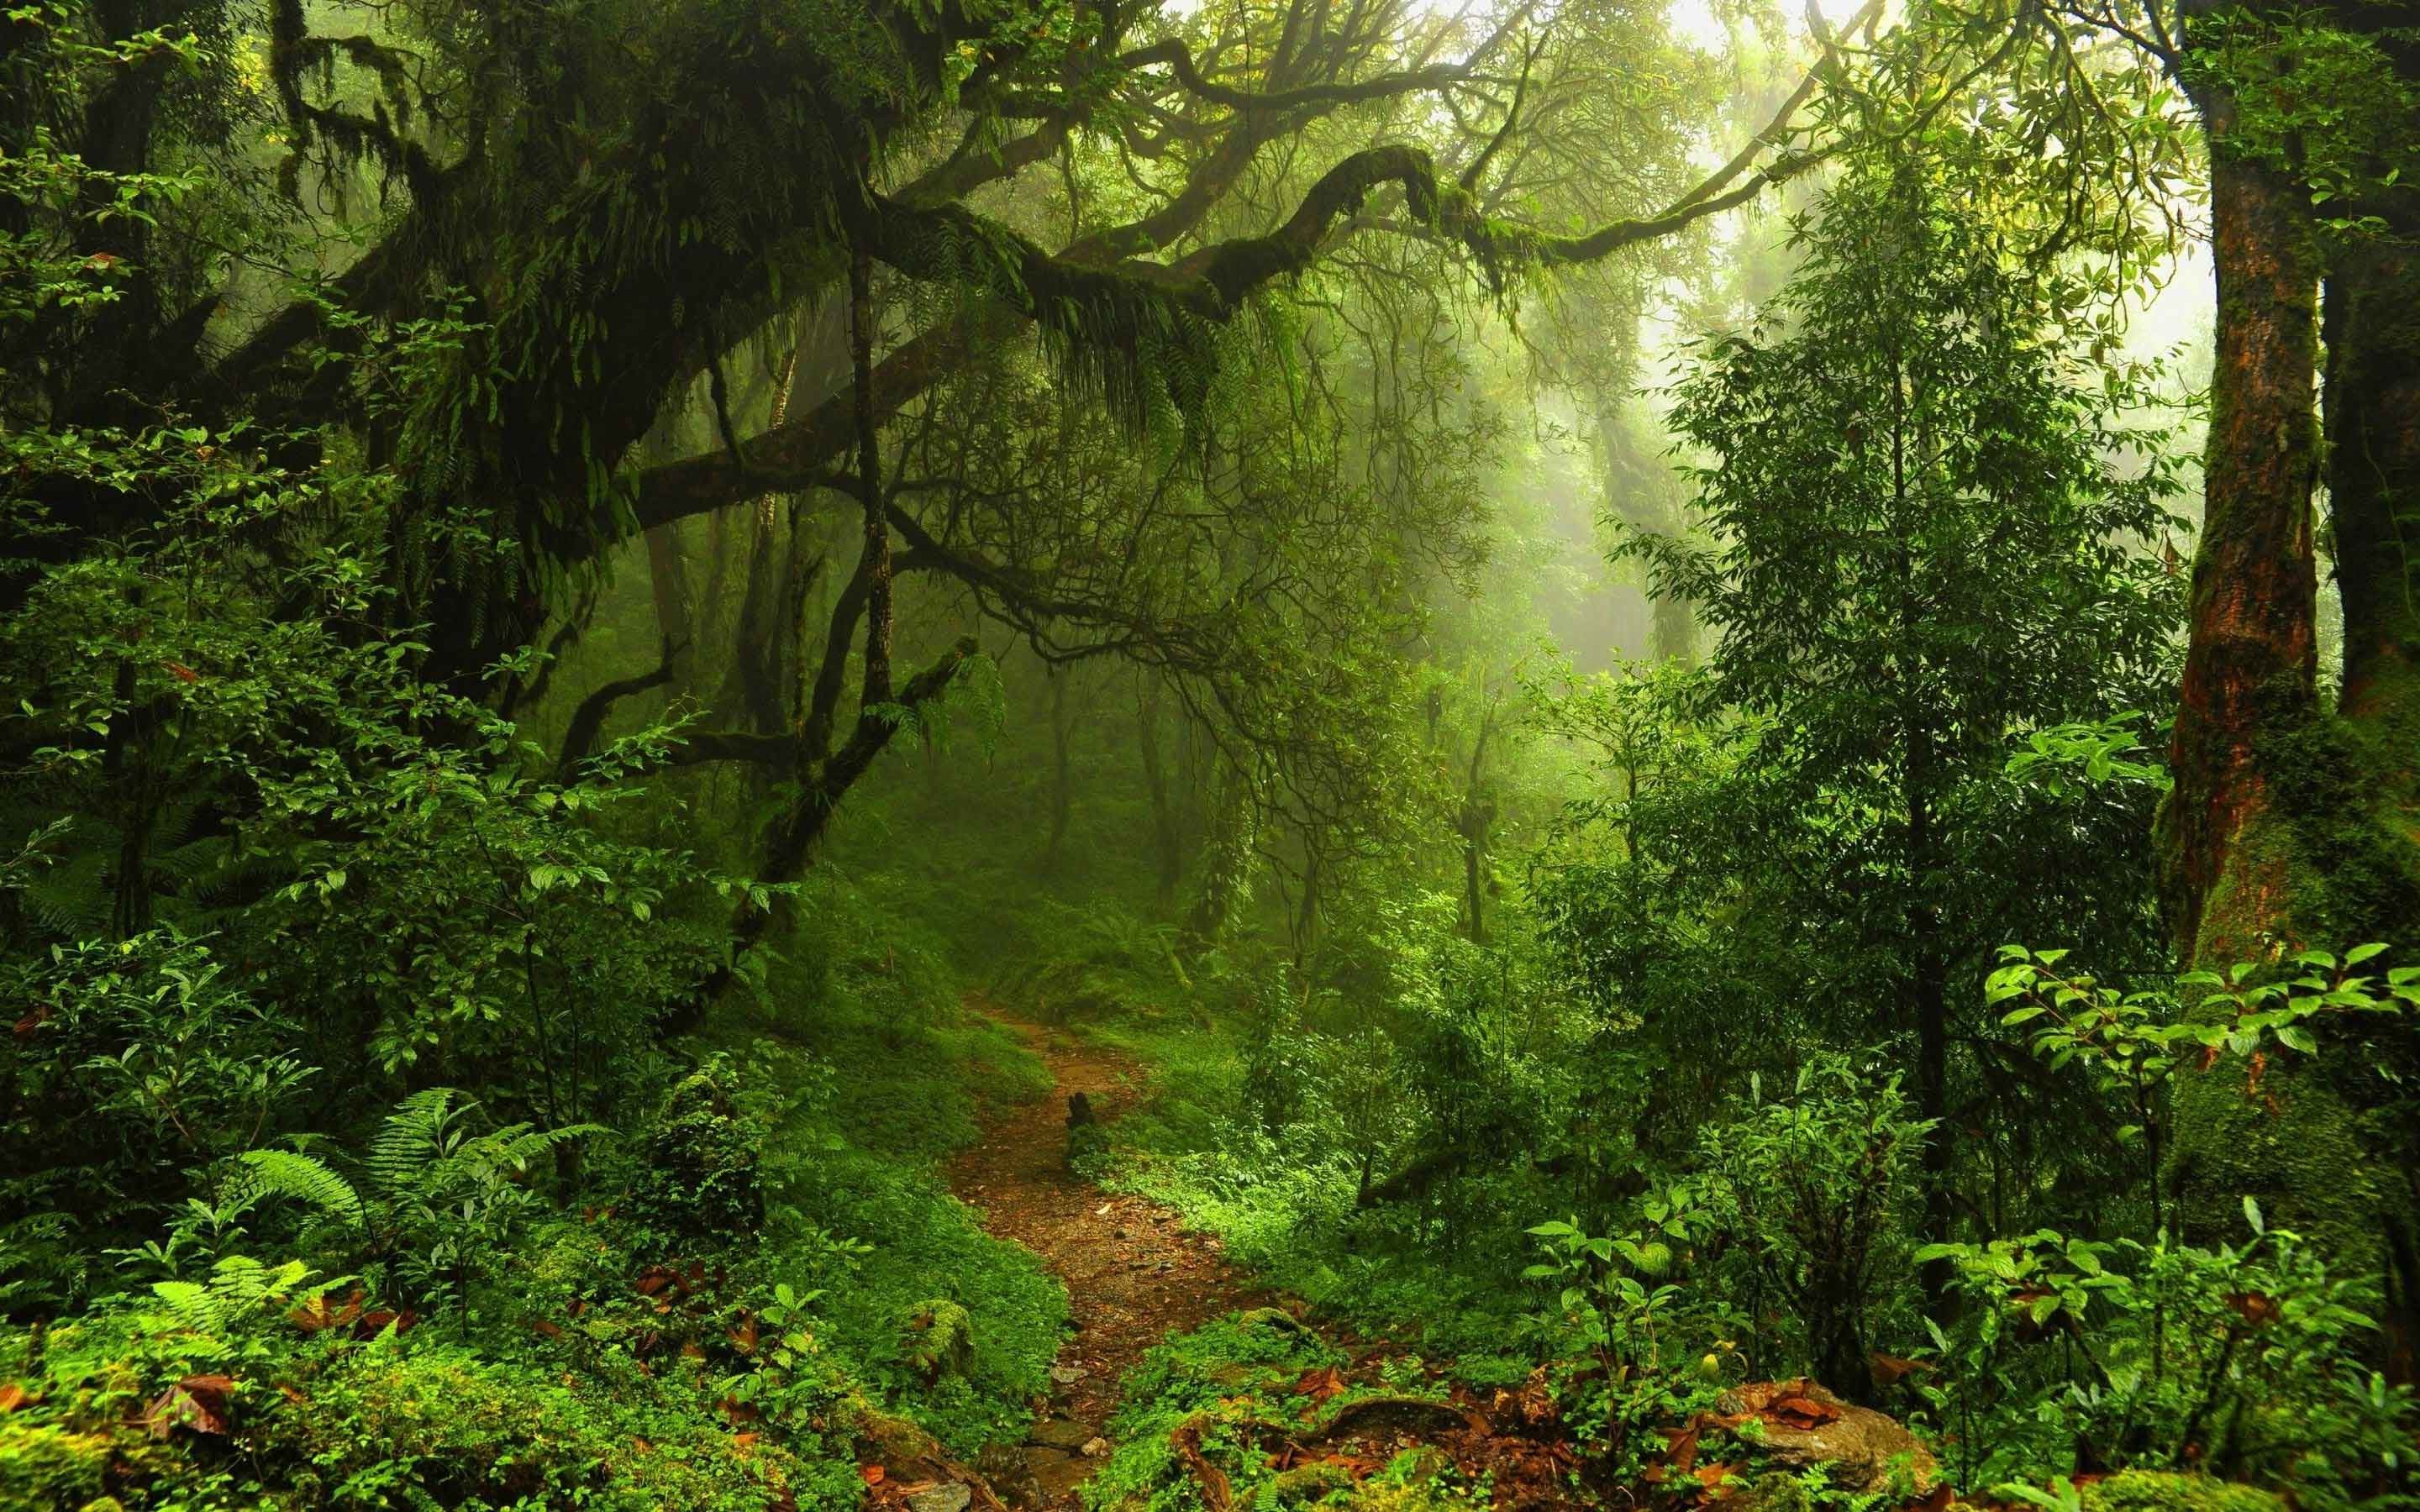 Rainforest Wallpaper (61+ Images